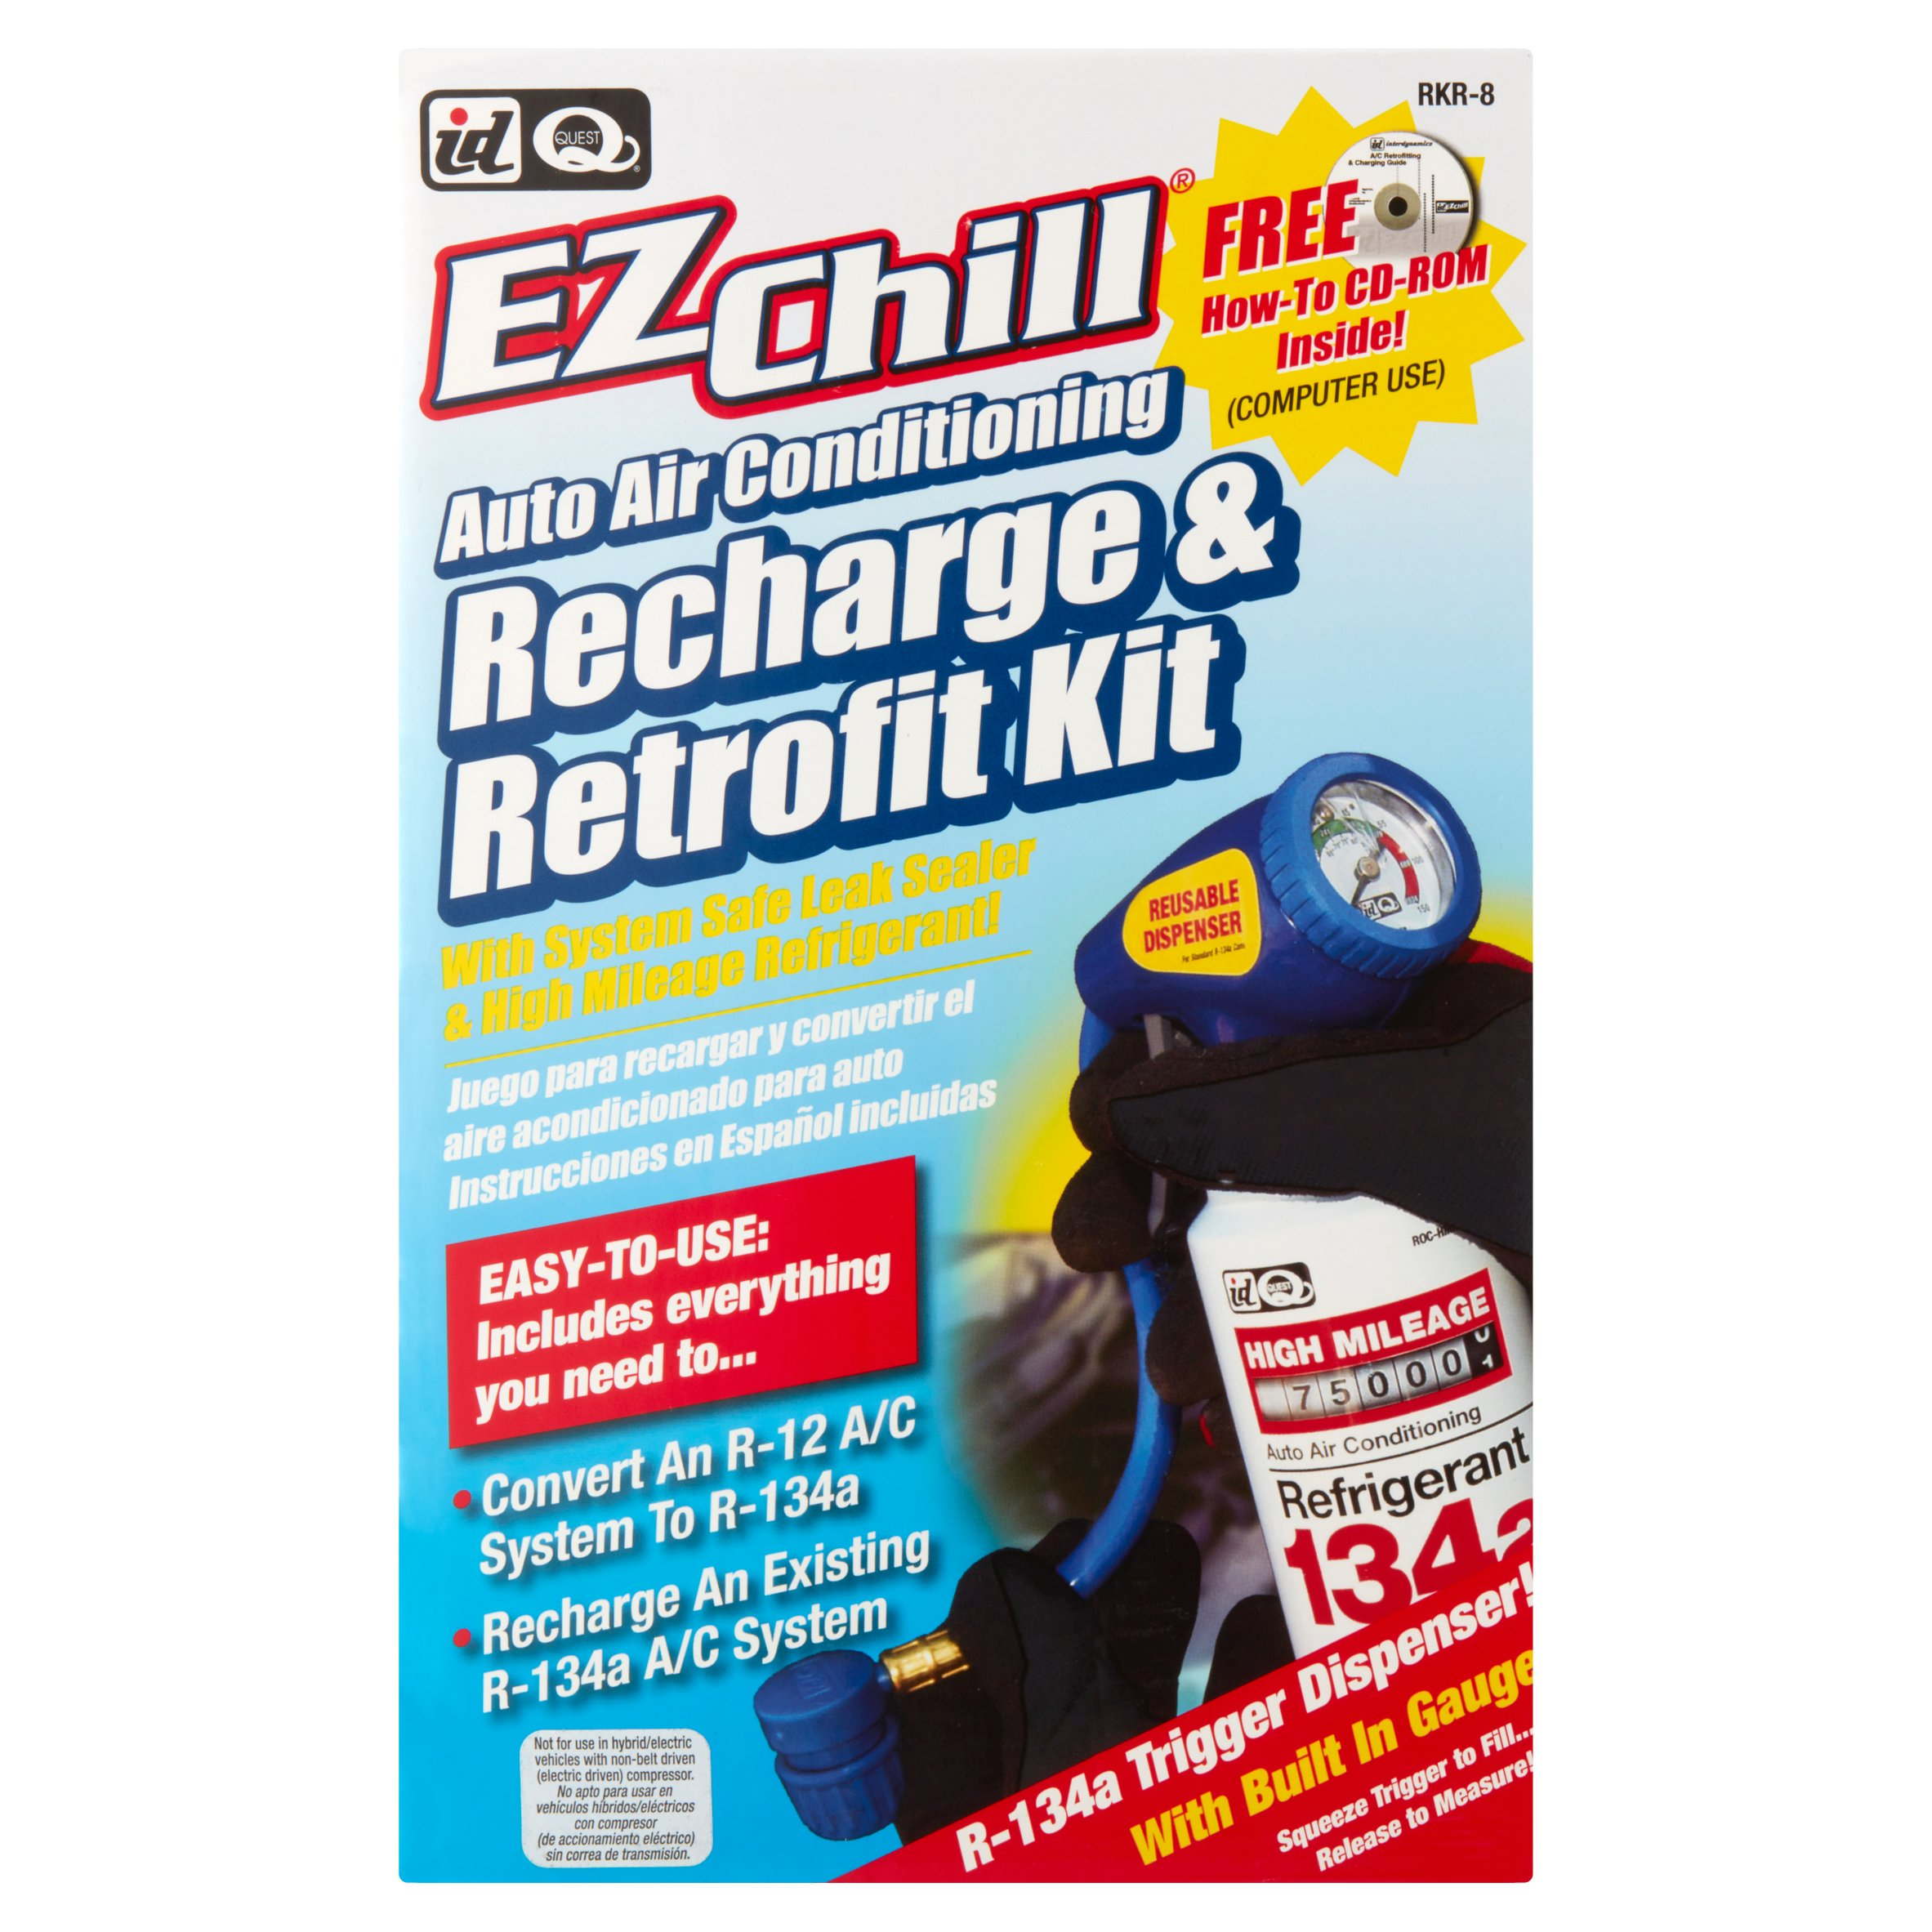 ID Quest EZChill Auto Air Conditioning Recharge & Retrofit Kit ...